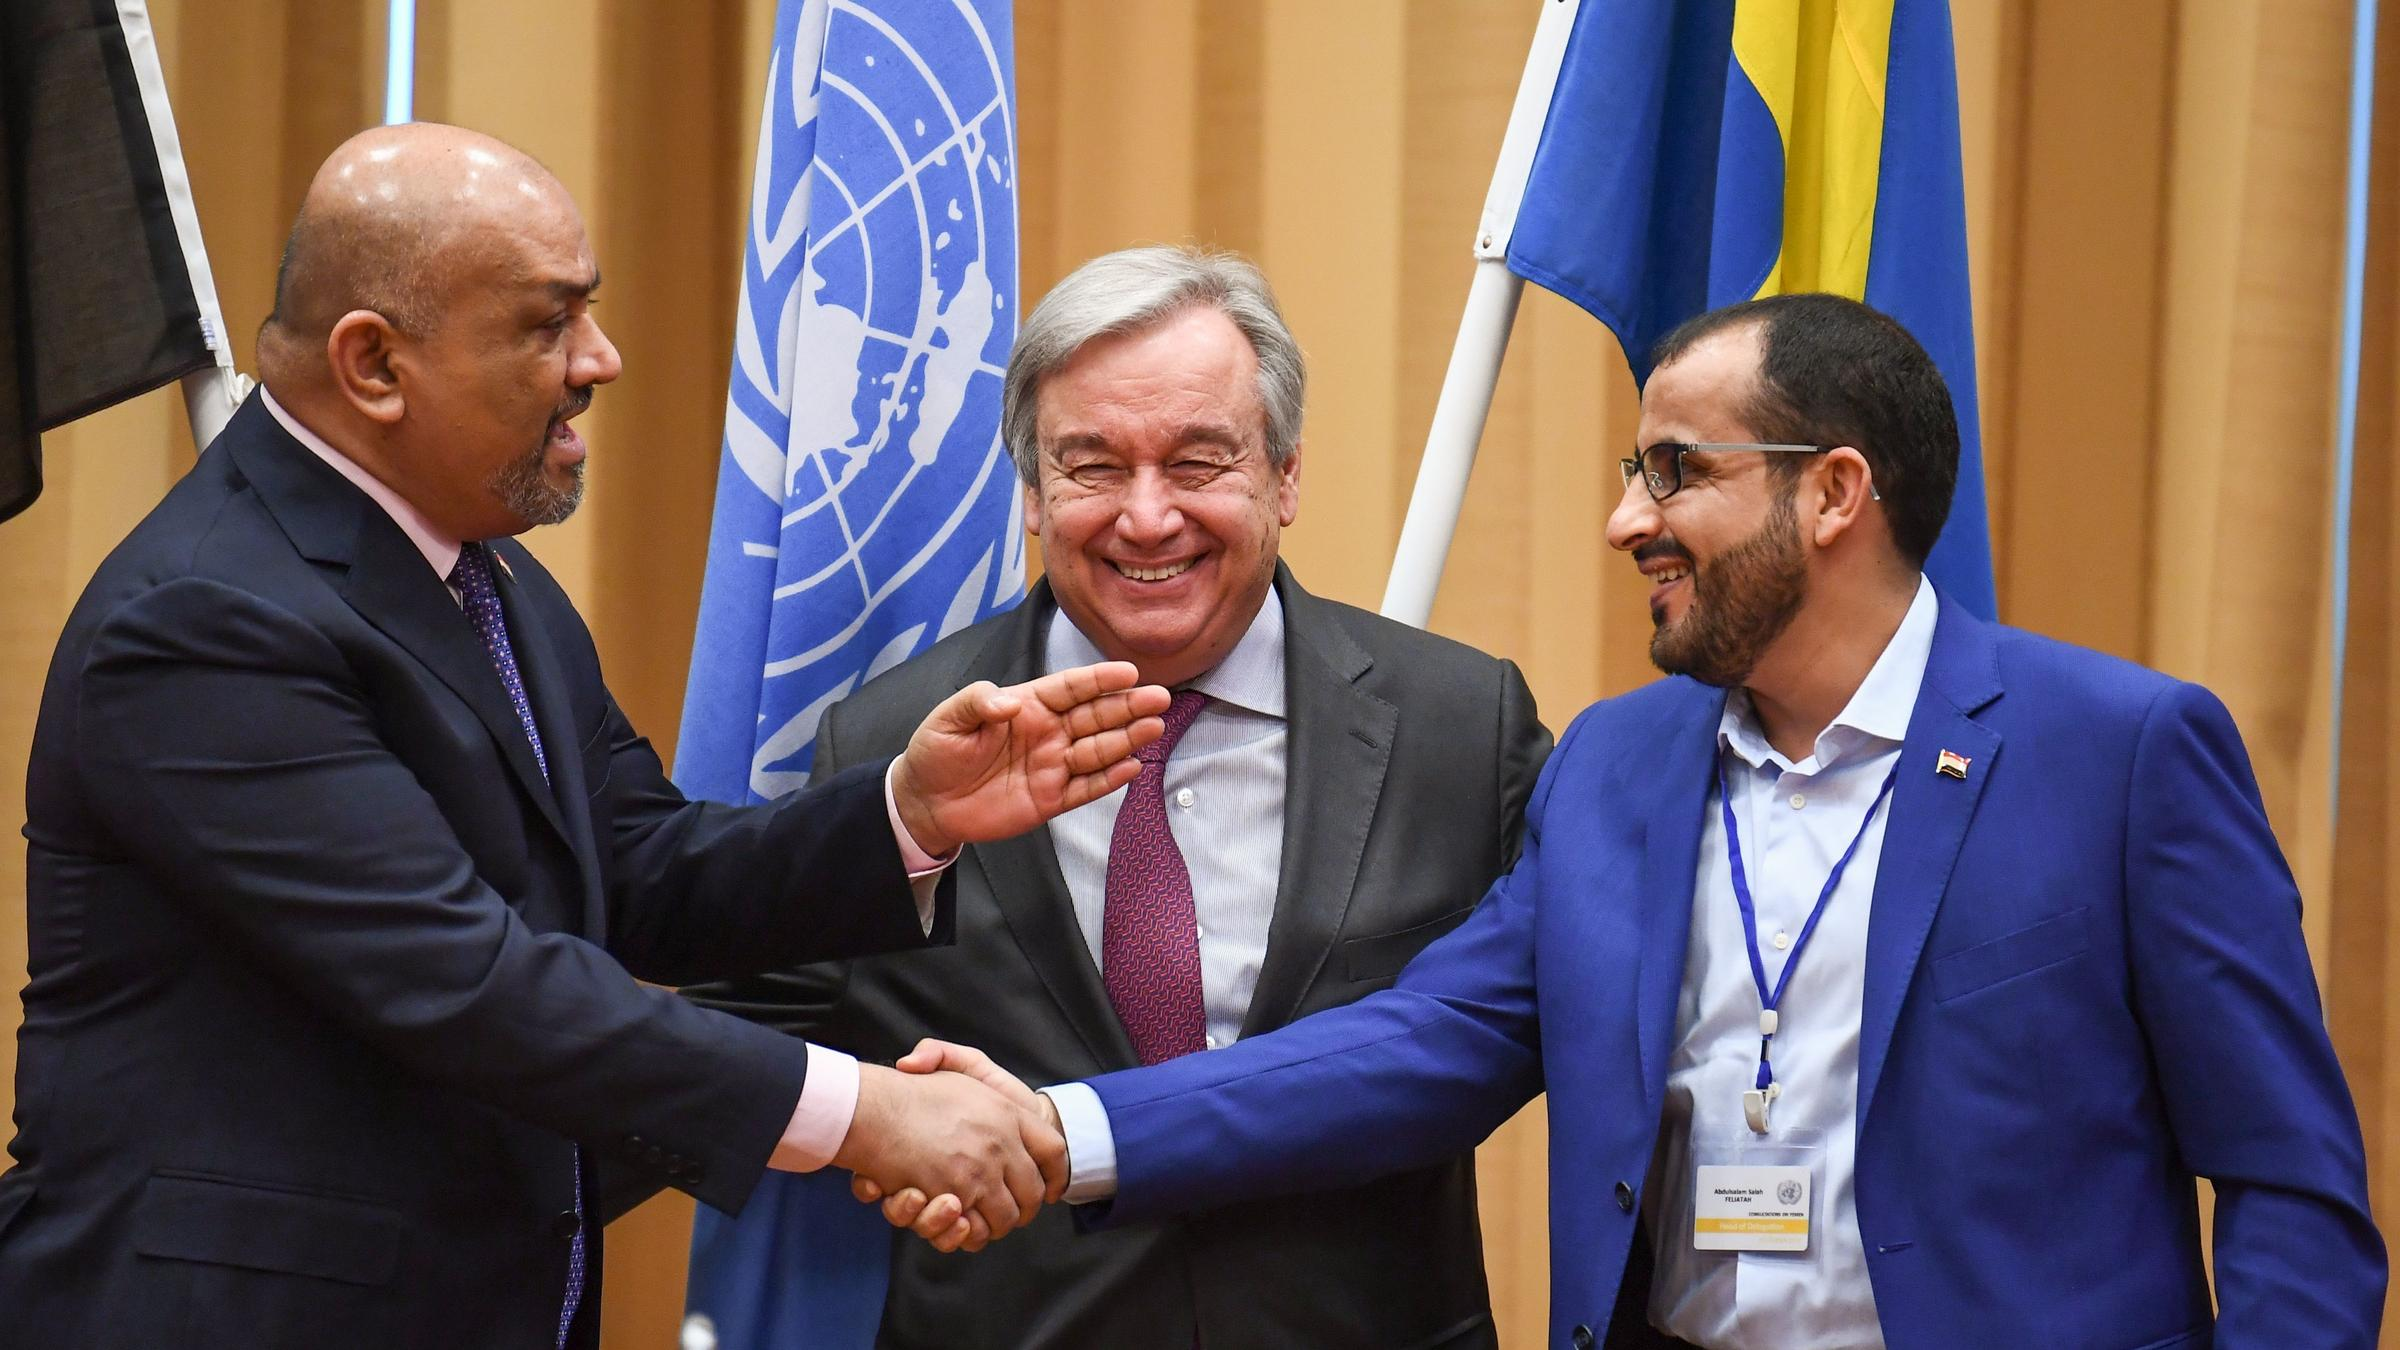 UAE: Sweden deal on Yemen wouldn't have happened without military pressure